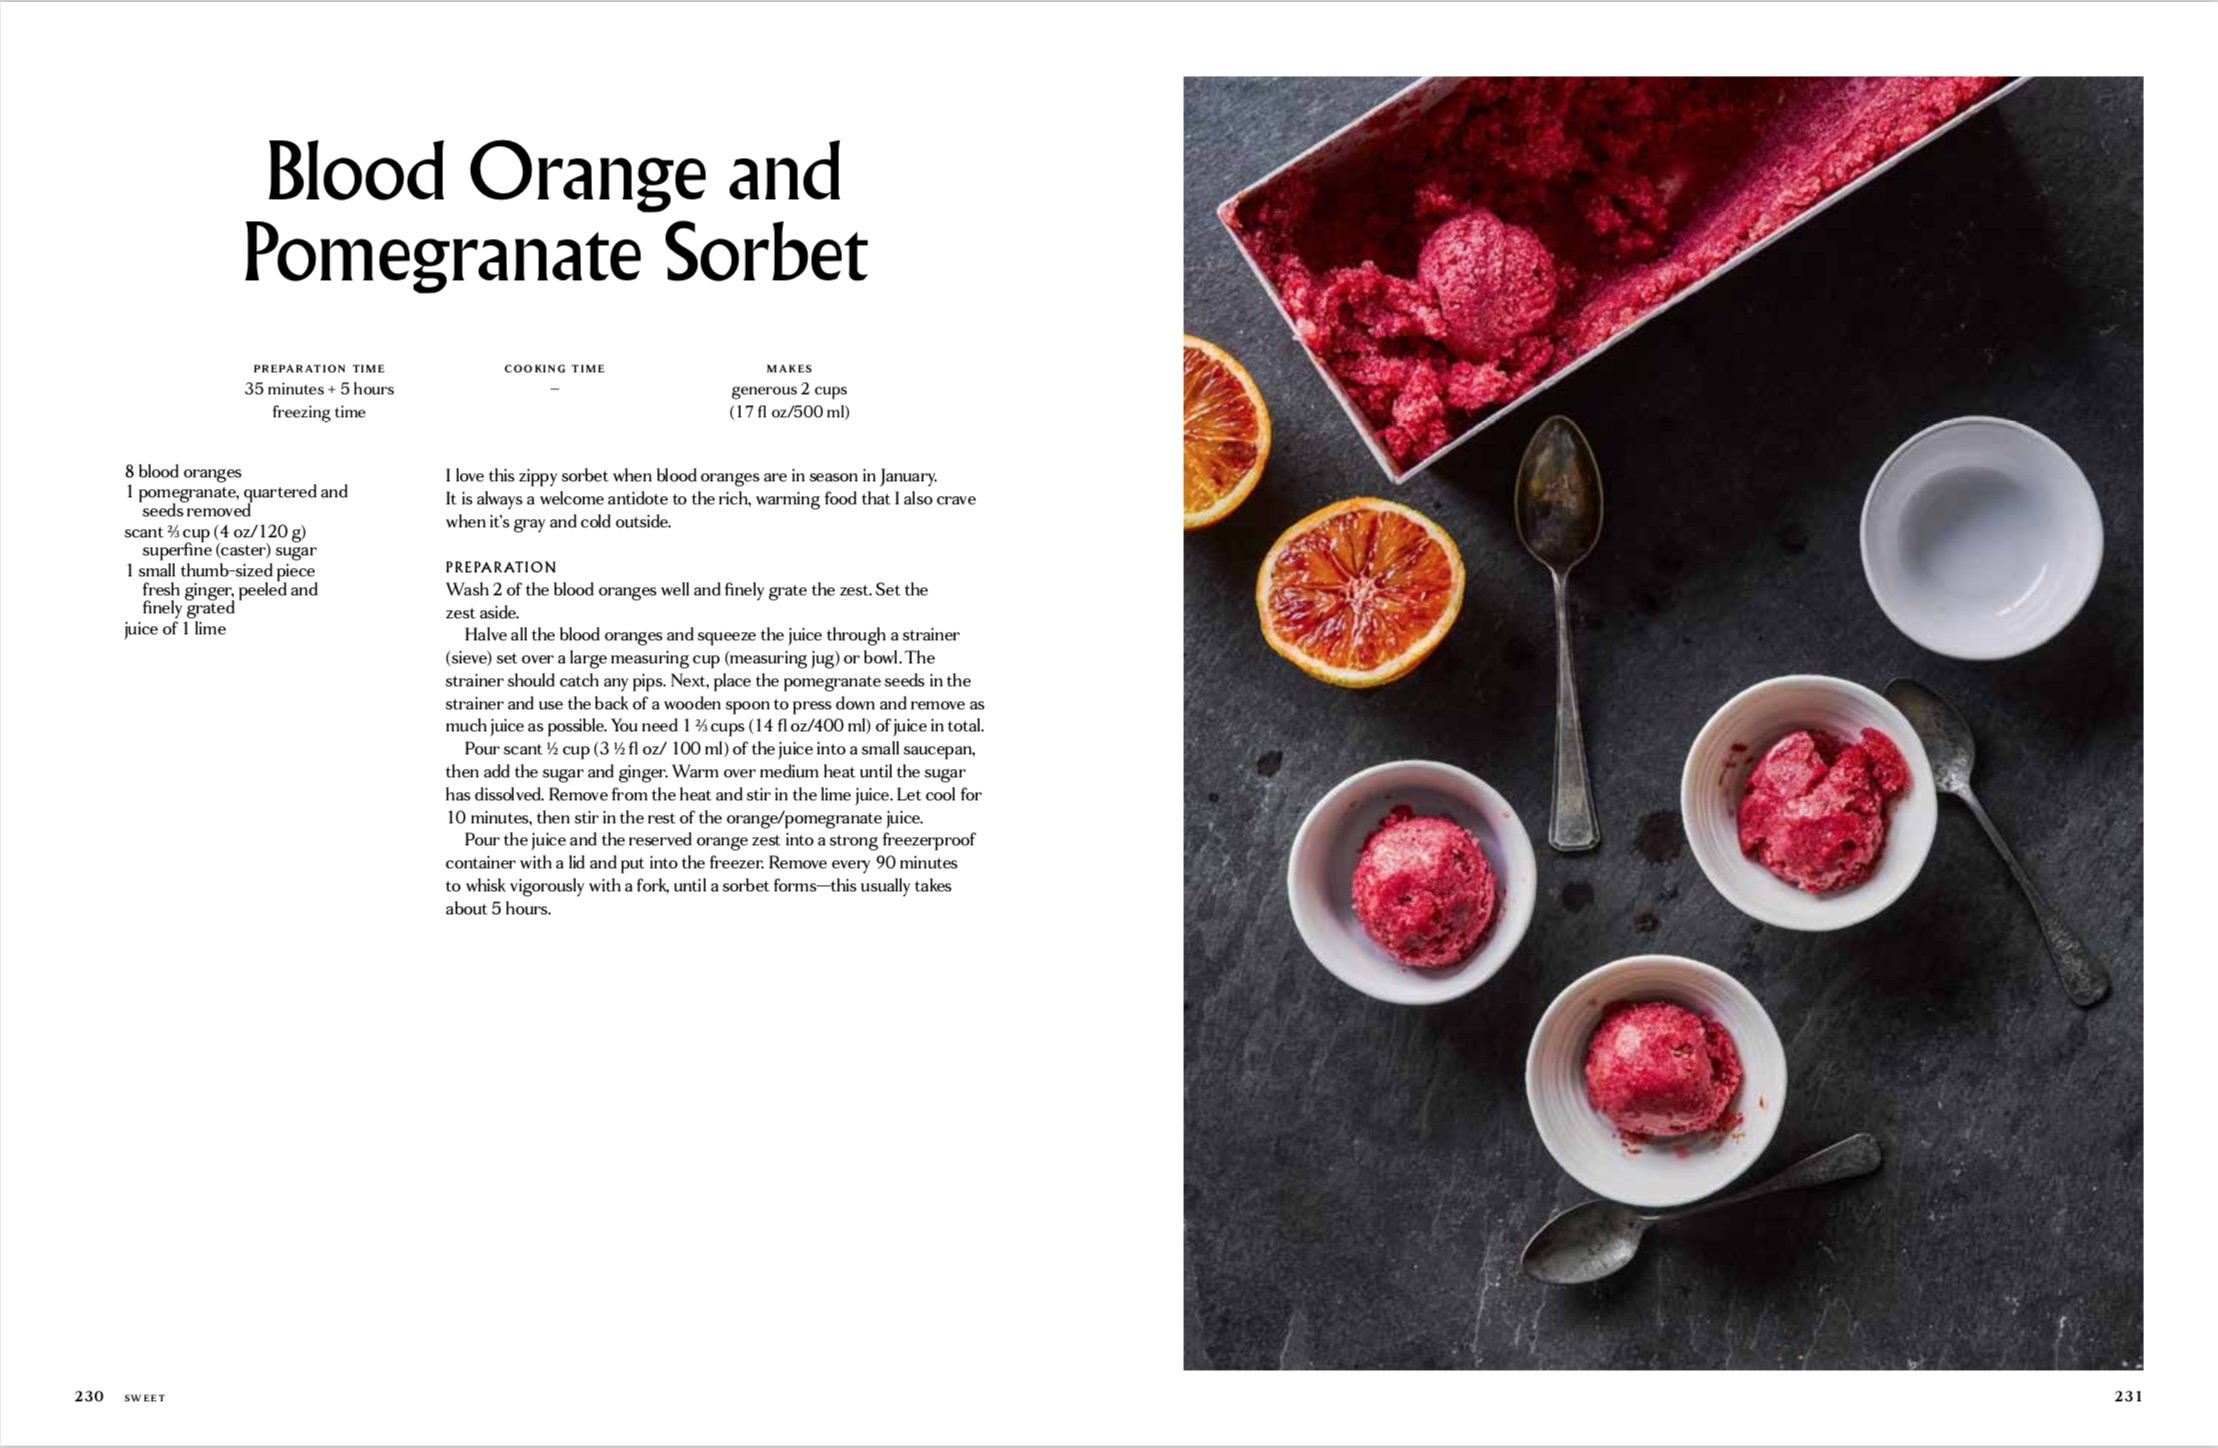 By Salma Hage from The Mezze Cookbook copyright Phaidon 2018